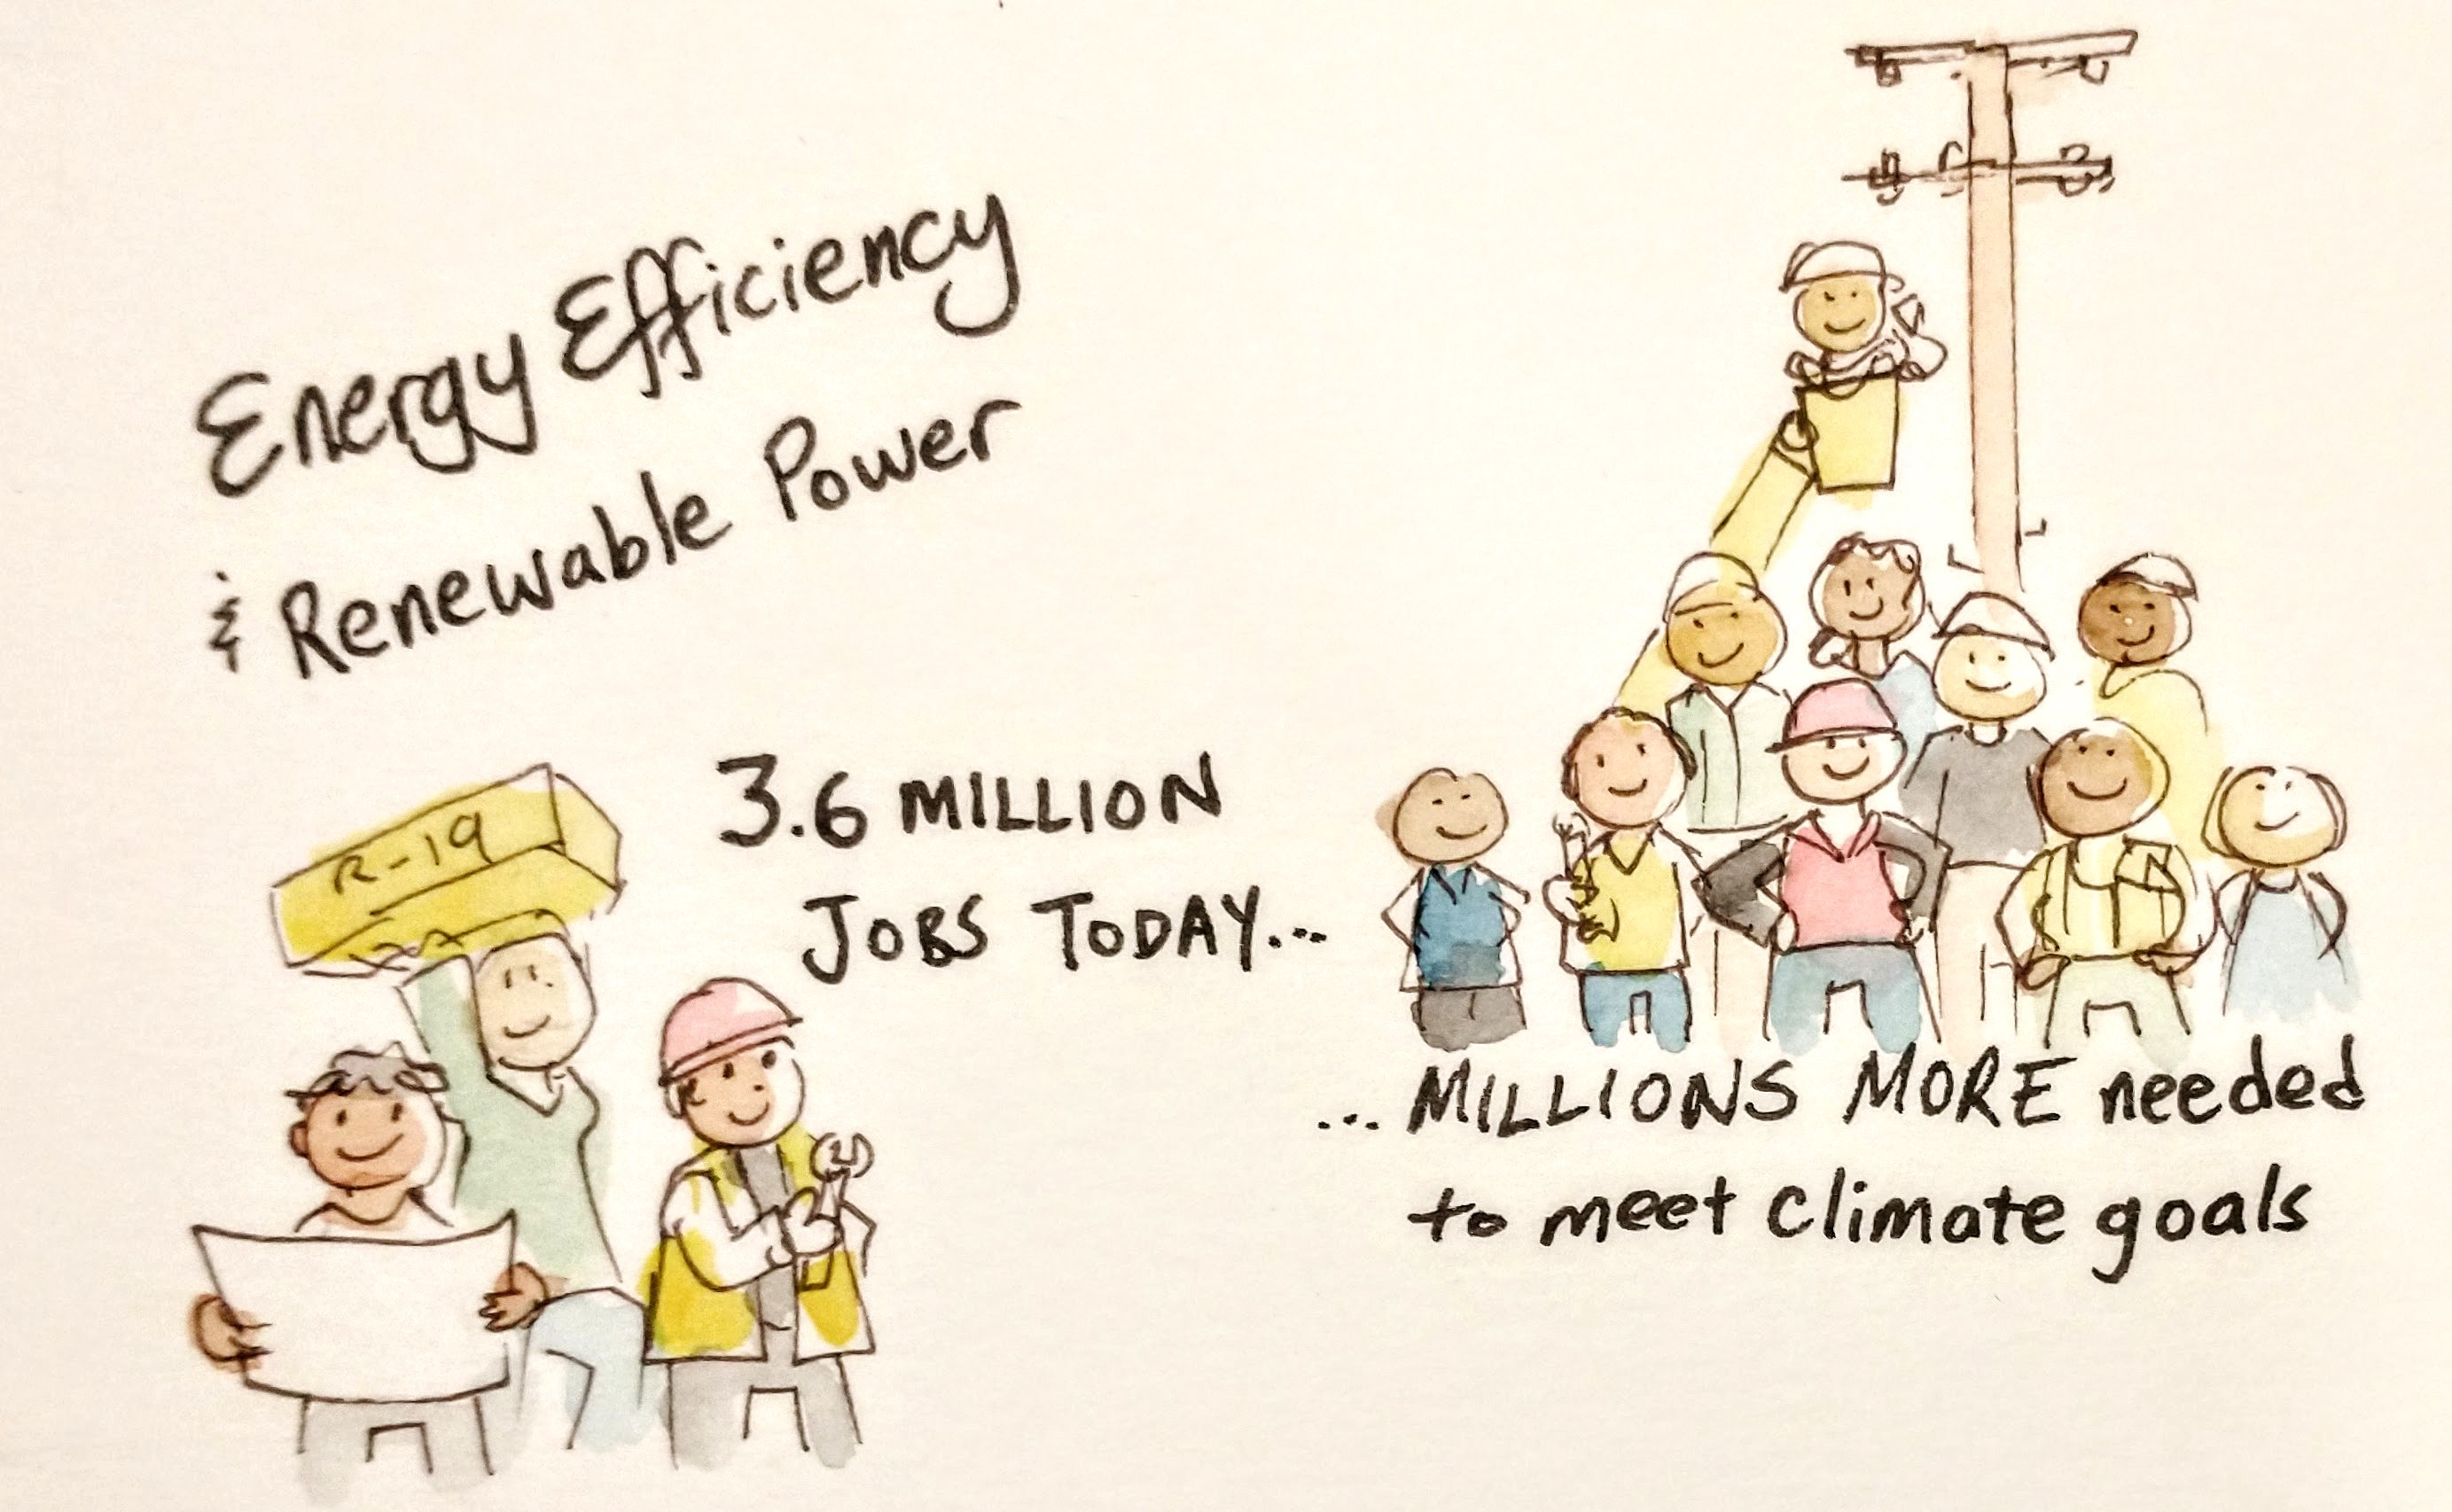 Energy Efficiency and Renewable Power—3.6 million jobs today—group of 3 workers- Millions More needed to meet climate goals—group of 10 workers